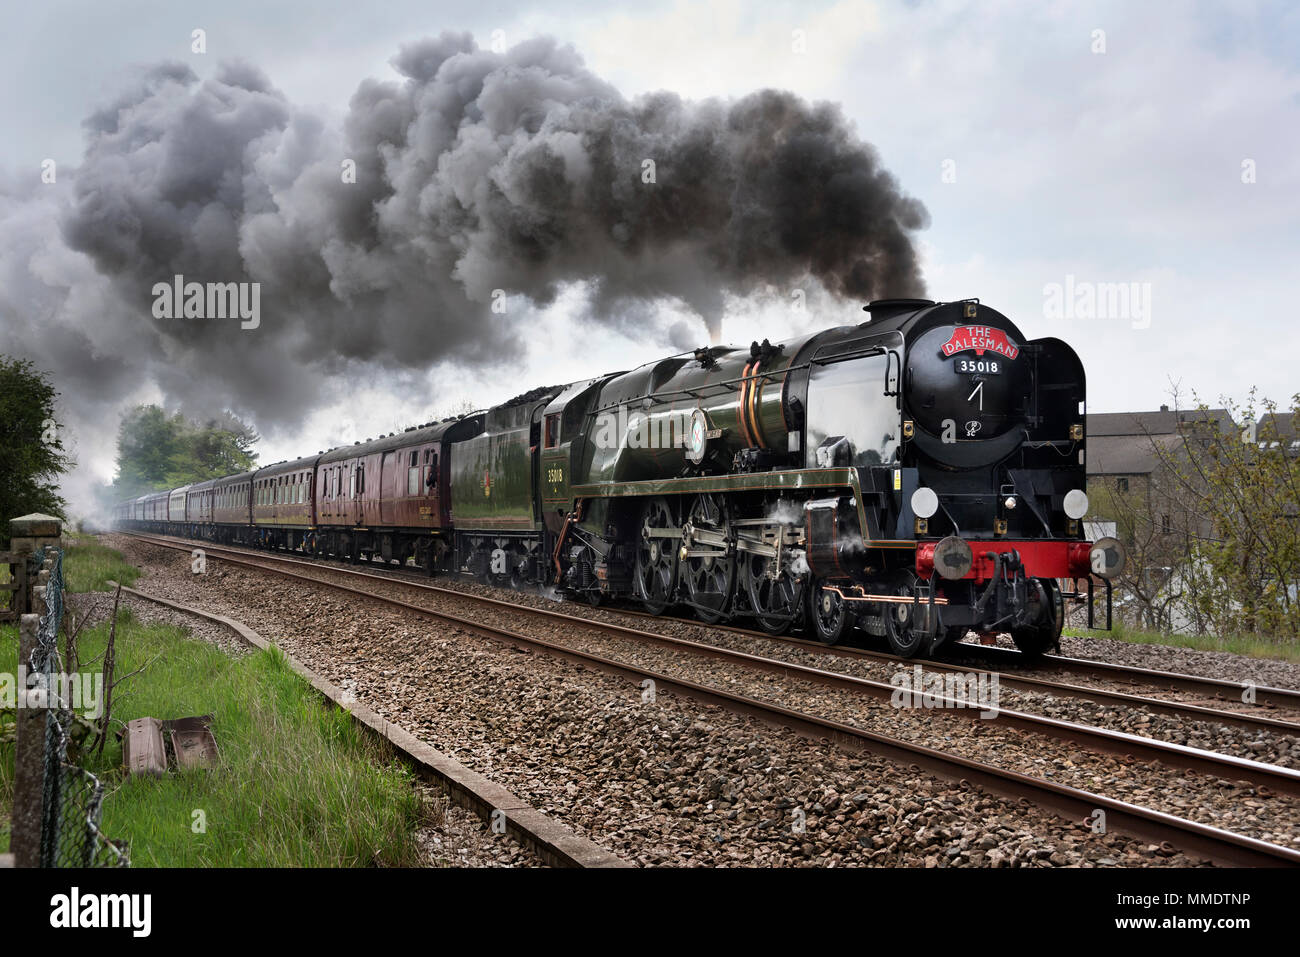 Restored Merchant Navy Class locomotive British India Line steams through Settle, North Yorkshire, with The Dalesman special train, 8th May 2018 - Stock Image